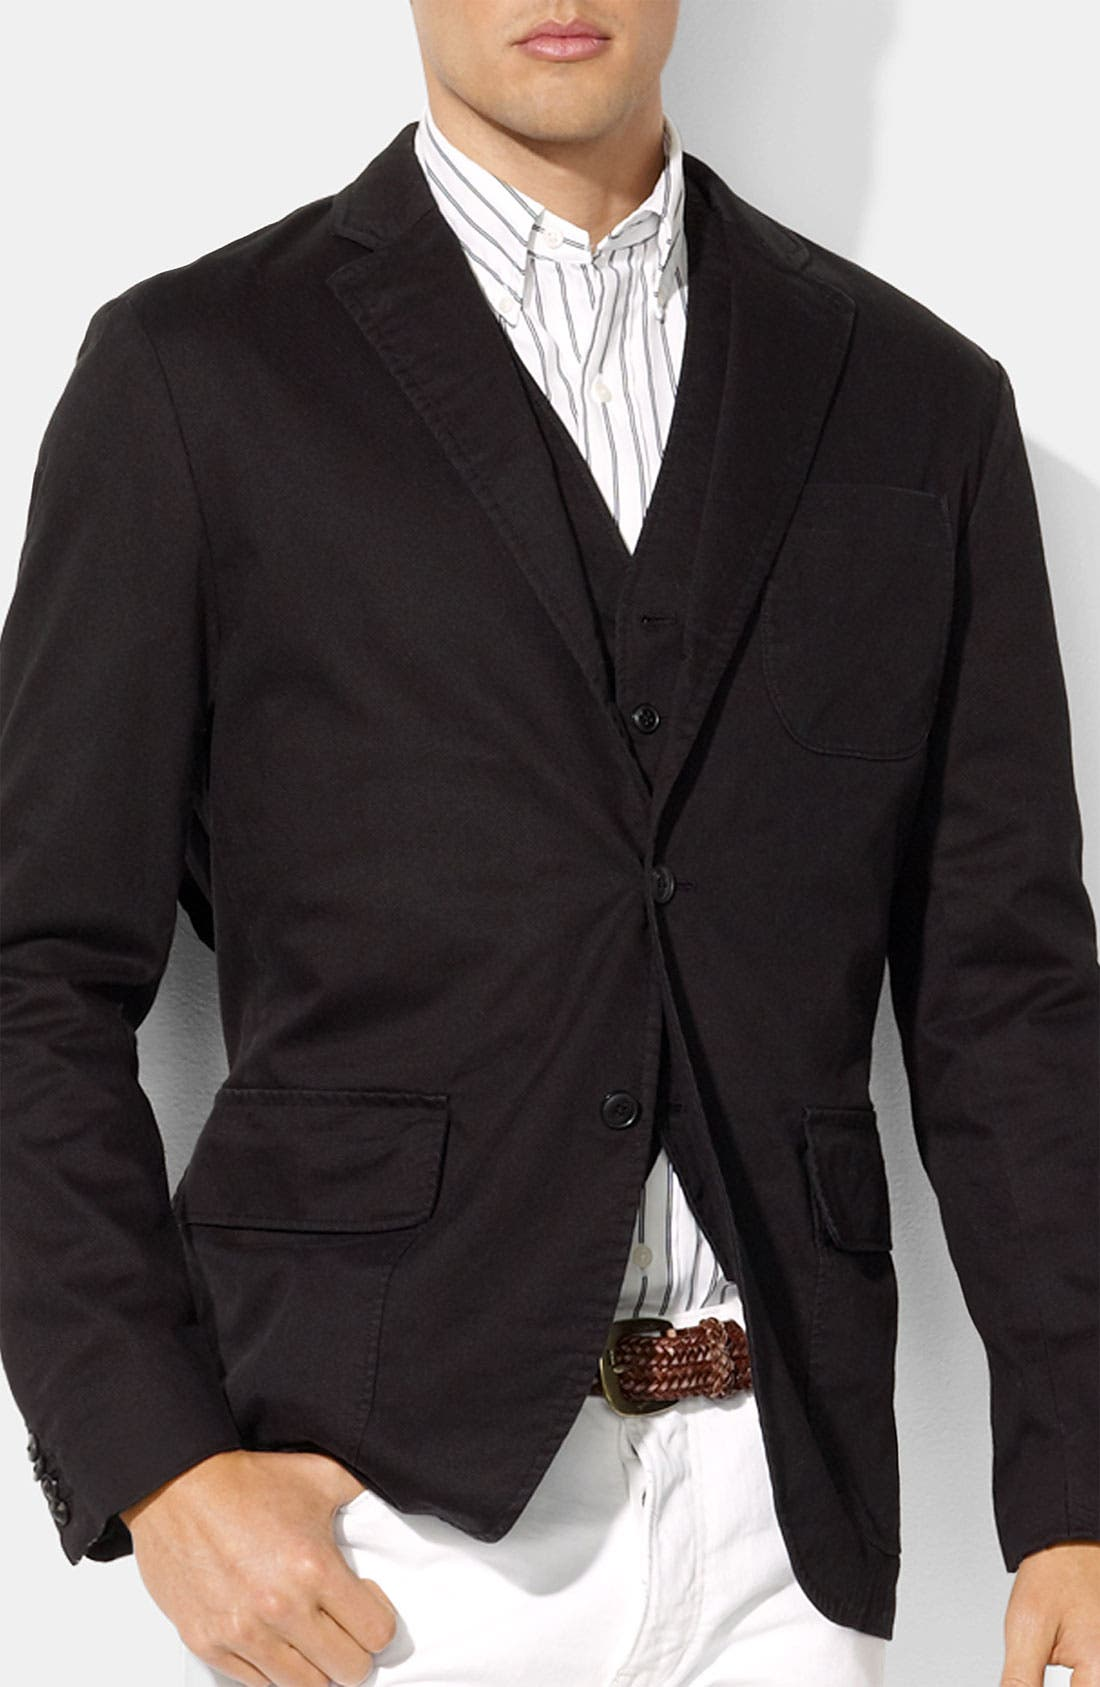 Alternate Image 1 Selected - Polo Ralph Lauren 'Leverett' Classic Fit Sportcoat